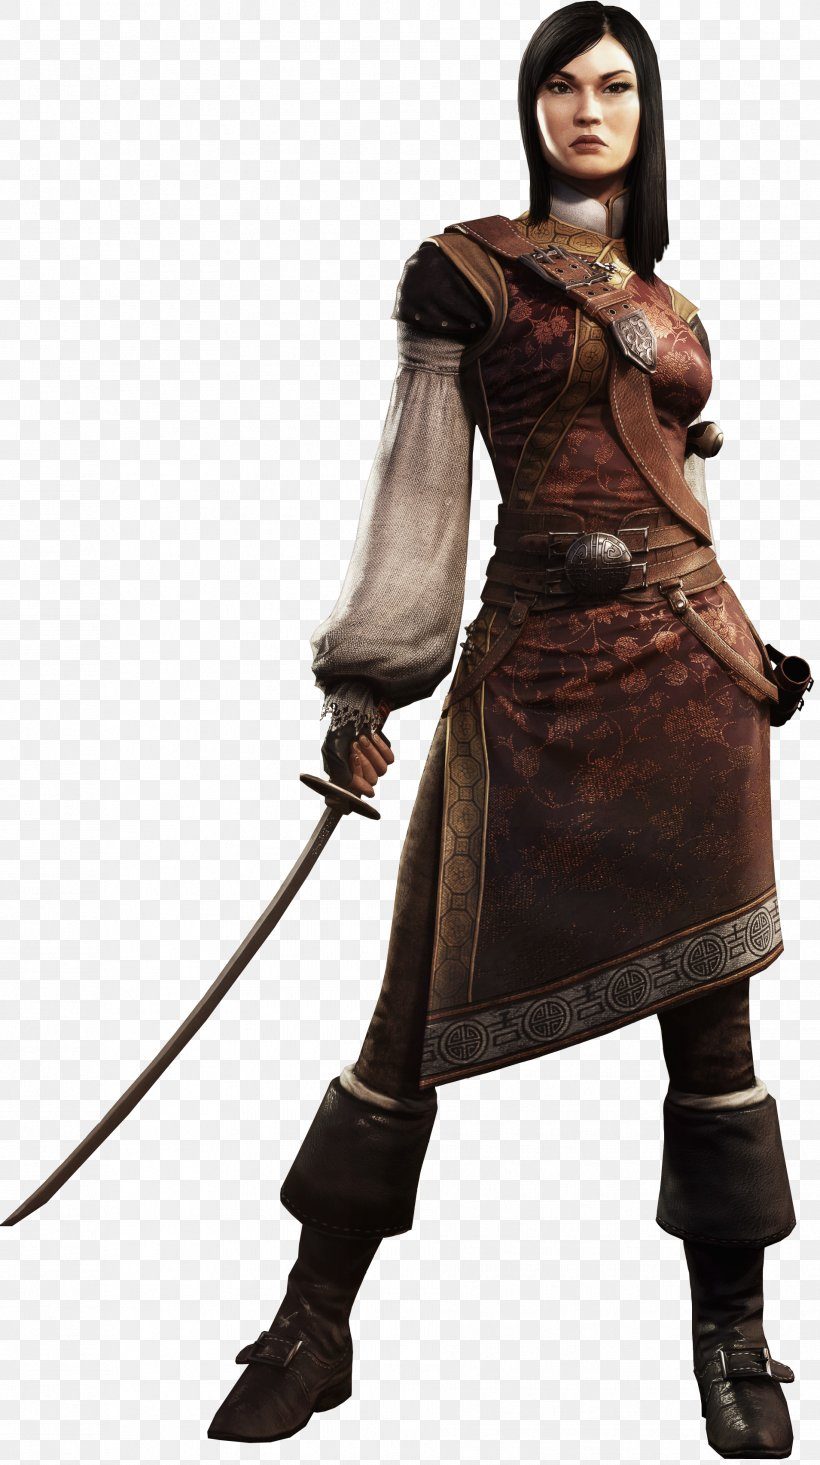 Assassin's Creed IV: Black Flag Assassin's Creed II Assassin's Creed: Brotherhood Ezio Auditore, PNG, 1909x3411px, Assassin S Creed Iv Black Flag, Assassin S Creed, Assassin S Creed Ii, Assassins, Blackbeard Download Free